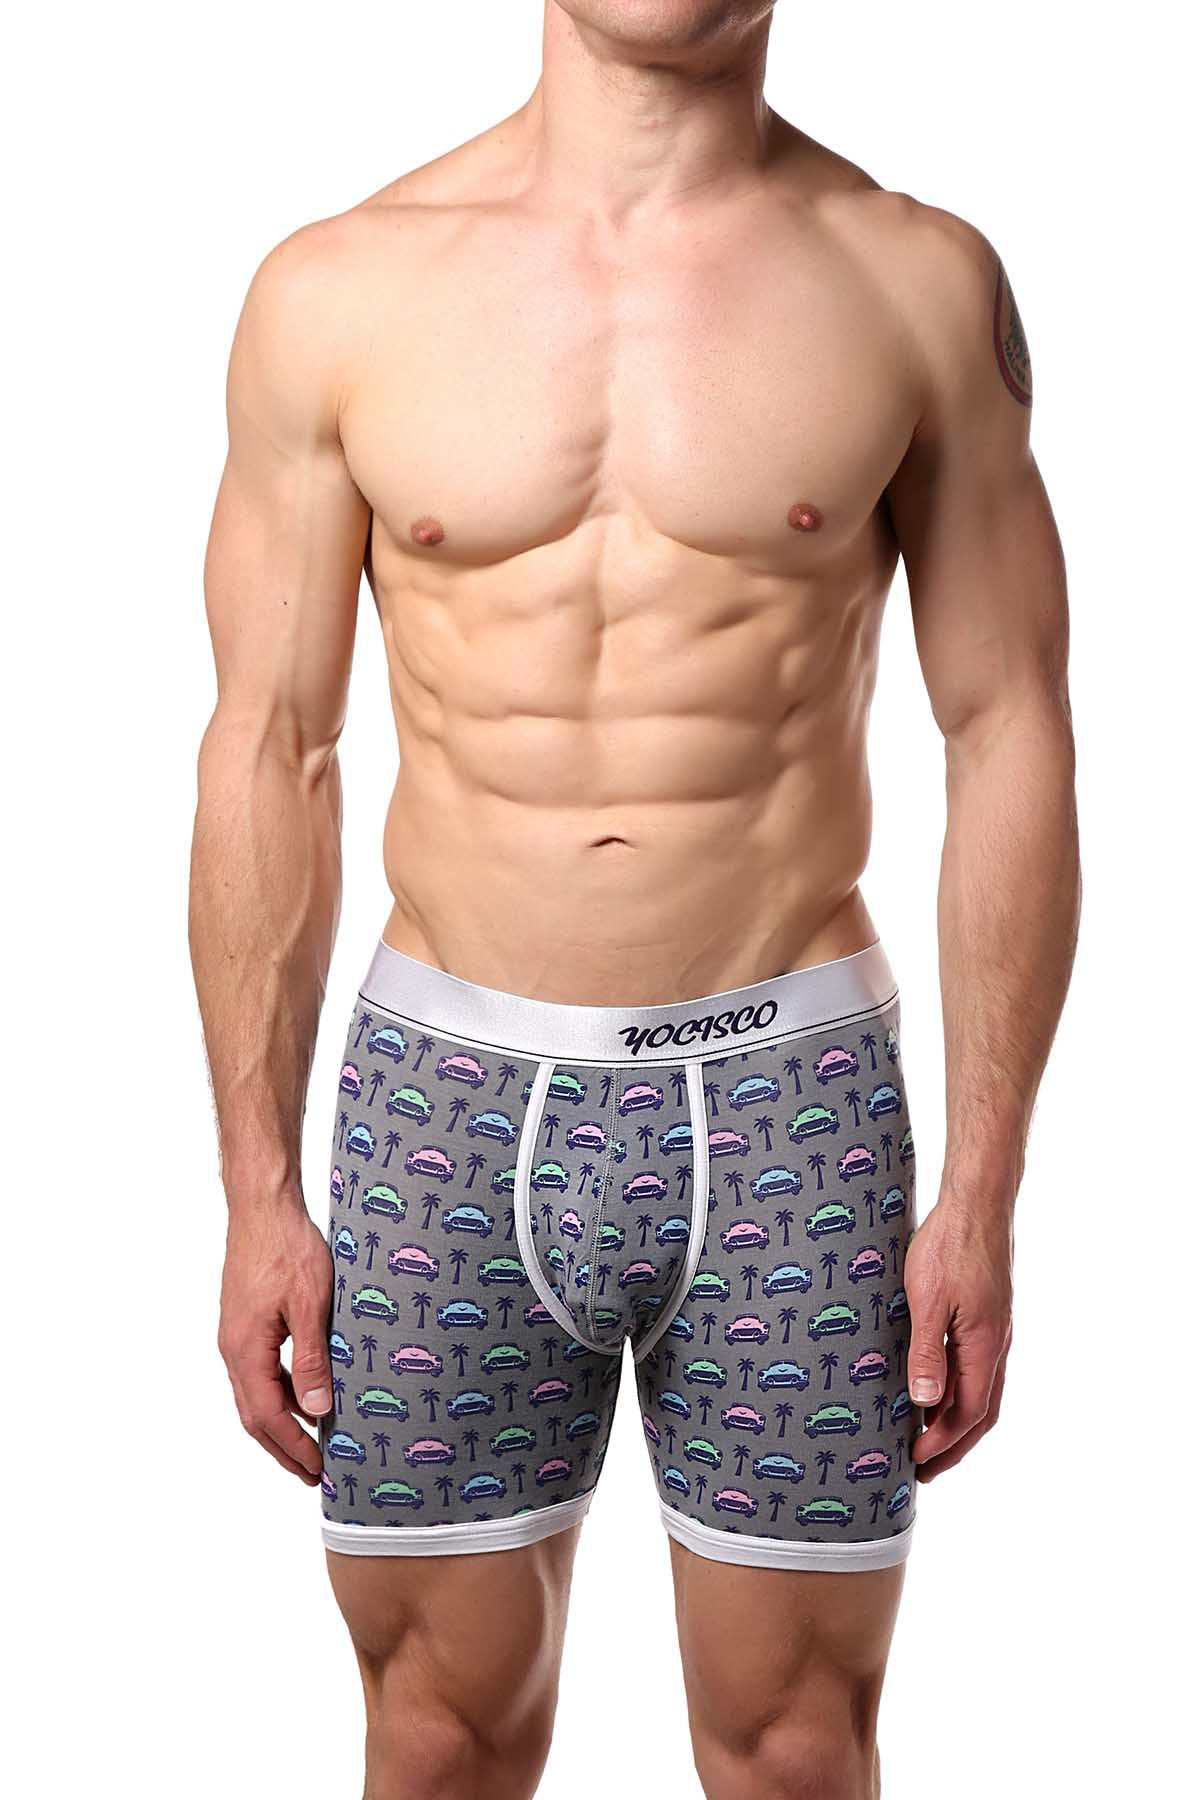 YOCISCO Grey La Havana Bamboo Boxer Brief